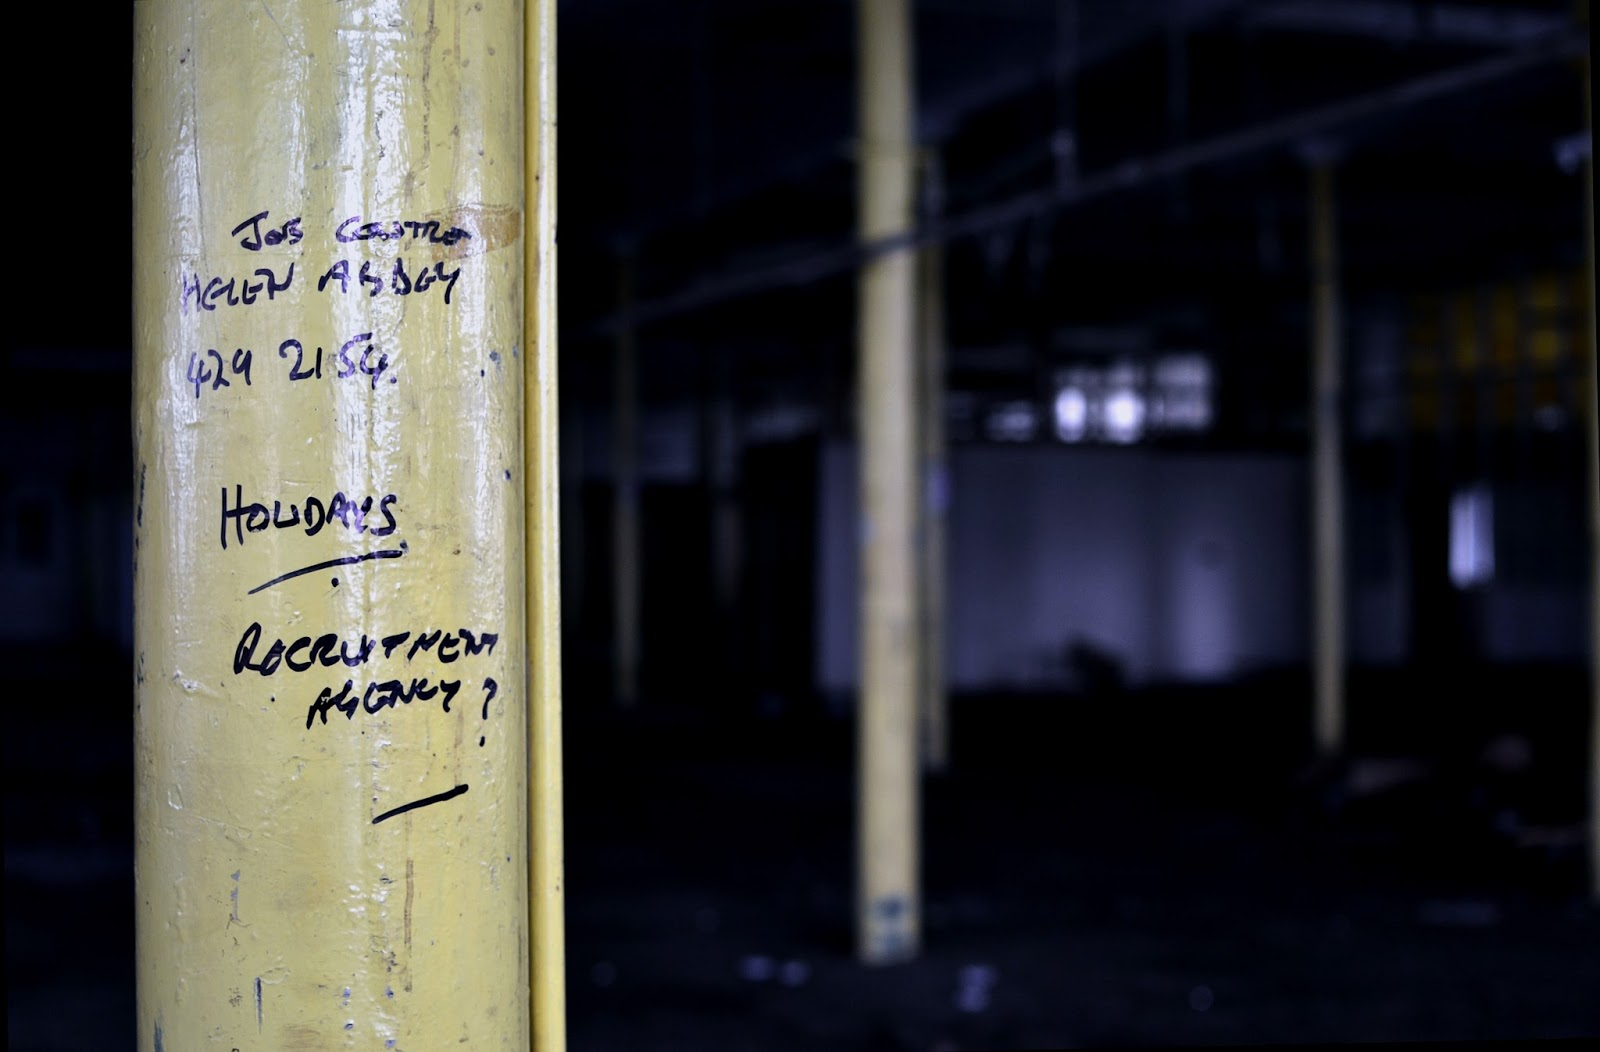 Failsworth Mill, R & J Partington, urbex, urban exploration, derelict, abandoned, photography, city, Oldham, Greater Manchester, black and white, atmosphere, fragments, remnants, mill, factory, history, industrial revolution, north west, cotton, everyday, escape, adventure, exploration, derp, abandoned,